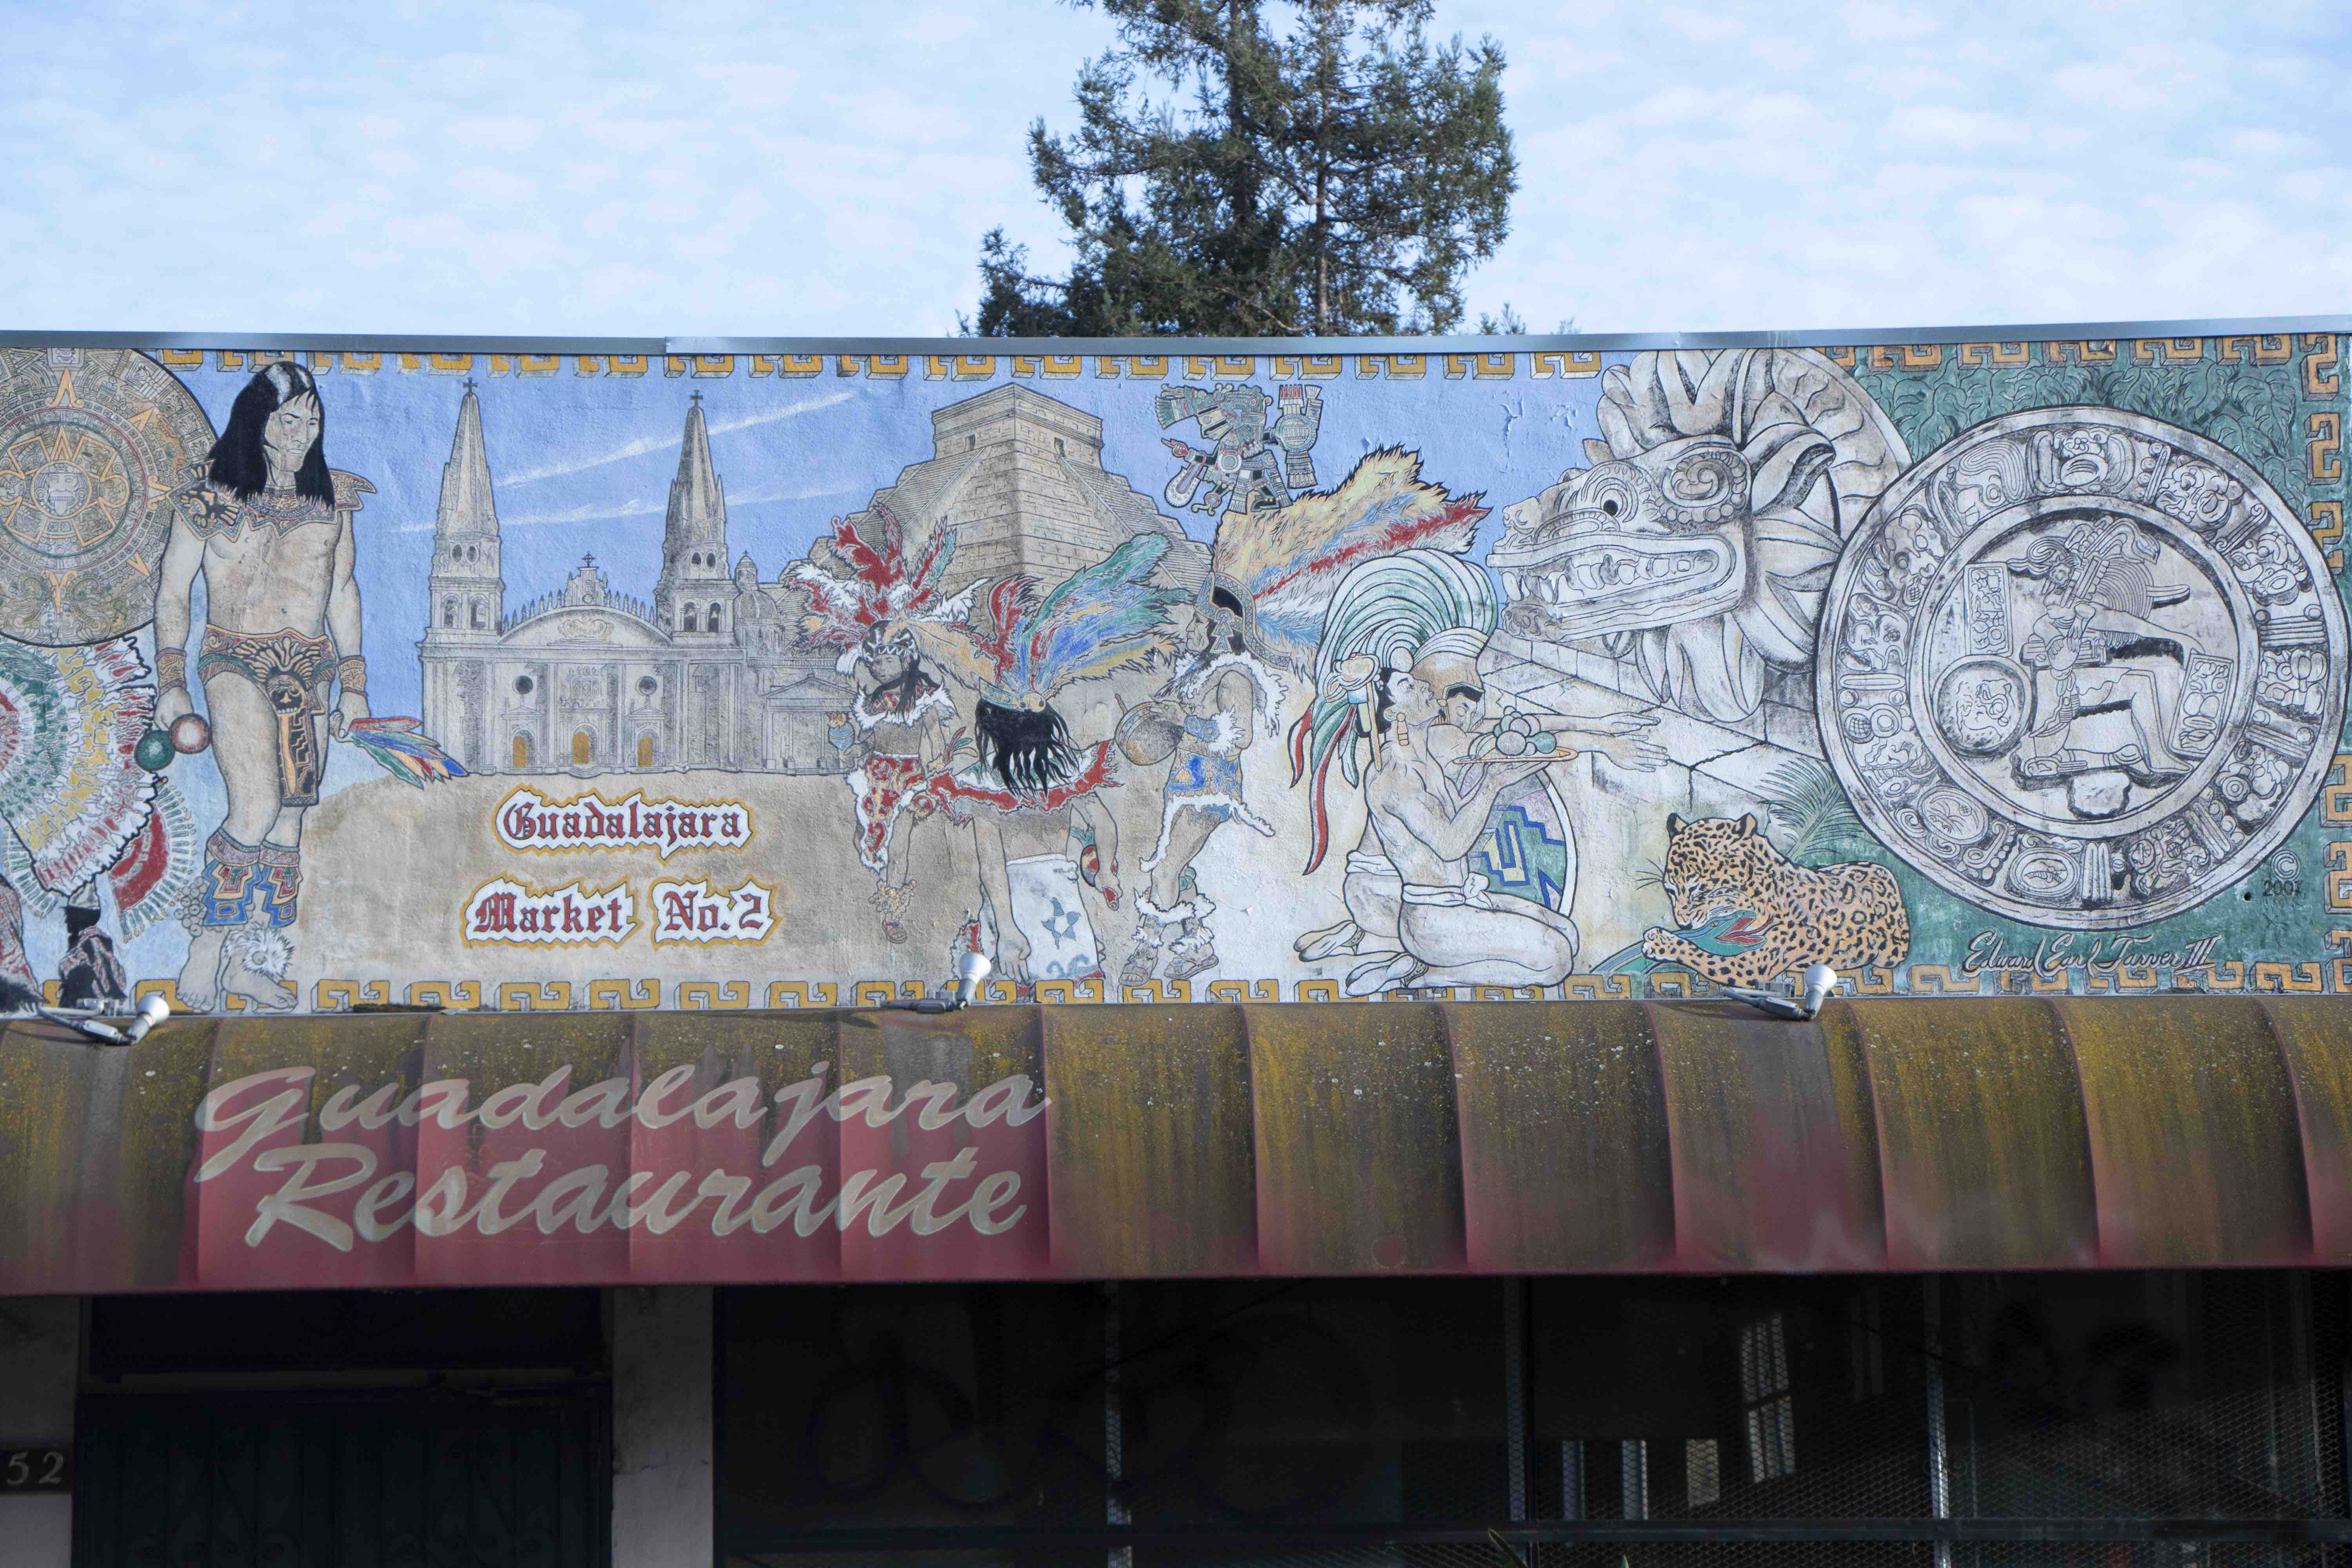 One of the six murals that the San Jose Historic Landmarks Commission recently added to the Historic Resources Inventory is painted on the shuttered Guadelajara Market #2 on Empire Street in San Jose, Calif., on Oct. 8, 2019. (Vanessa Ochavillo/Peninsula Press)